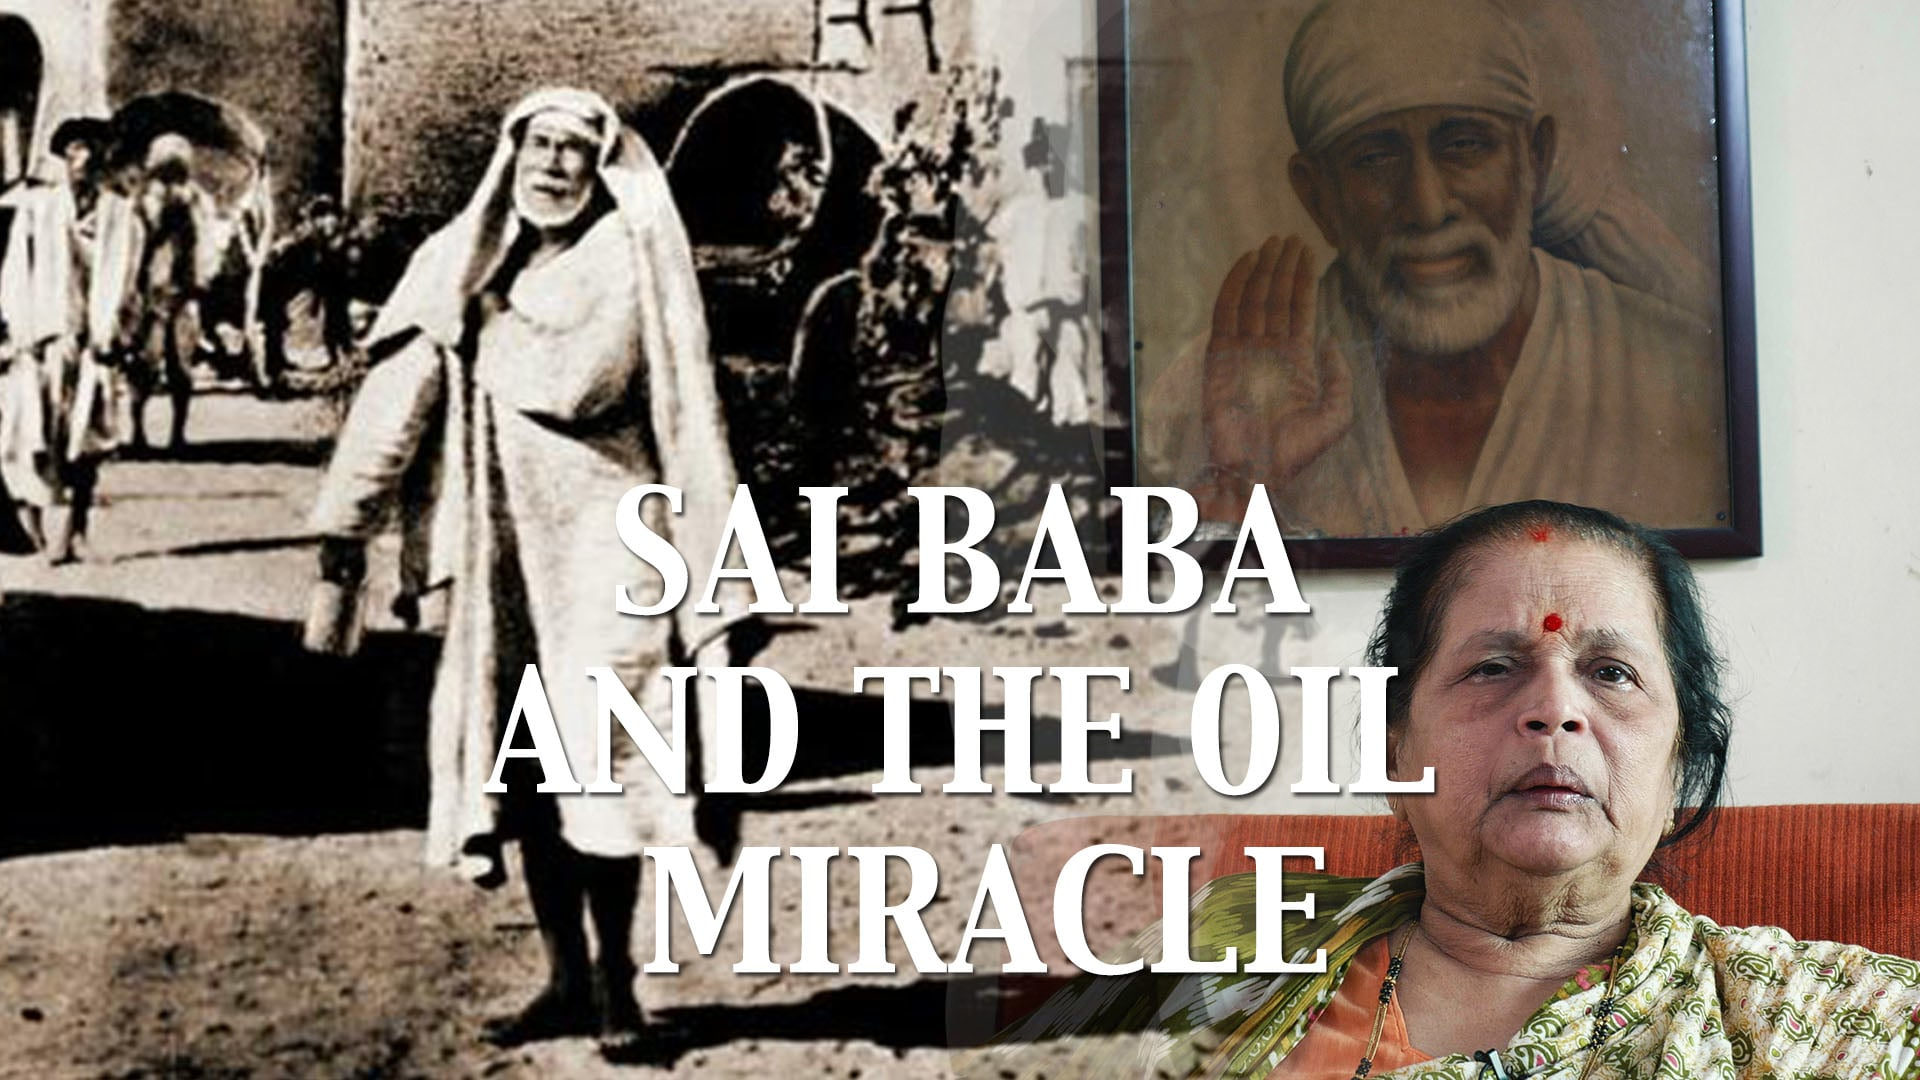 Sai Baba and the Oil Miracle